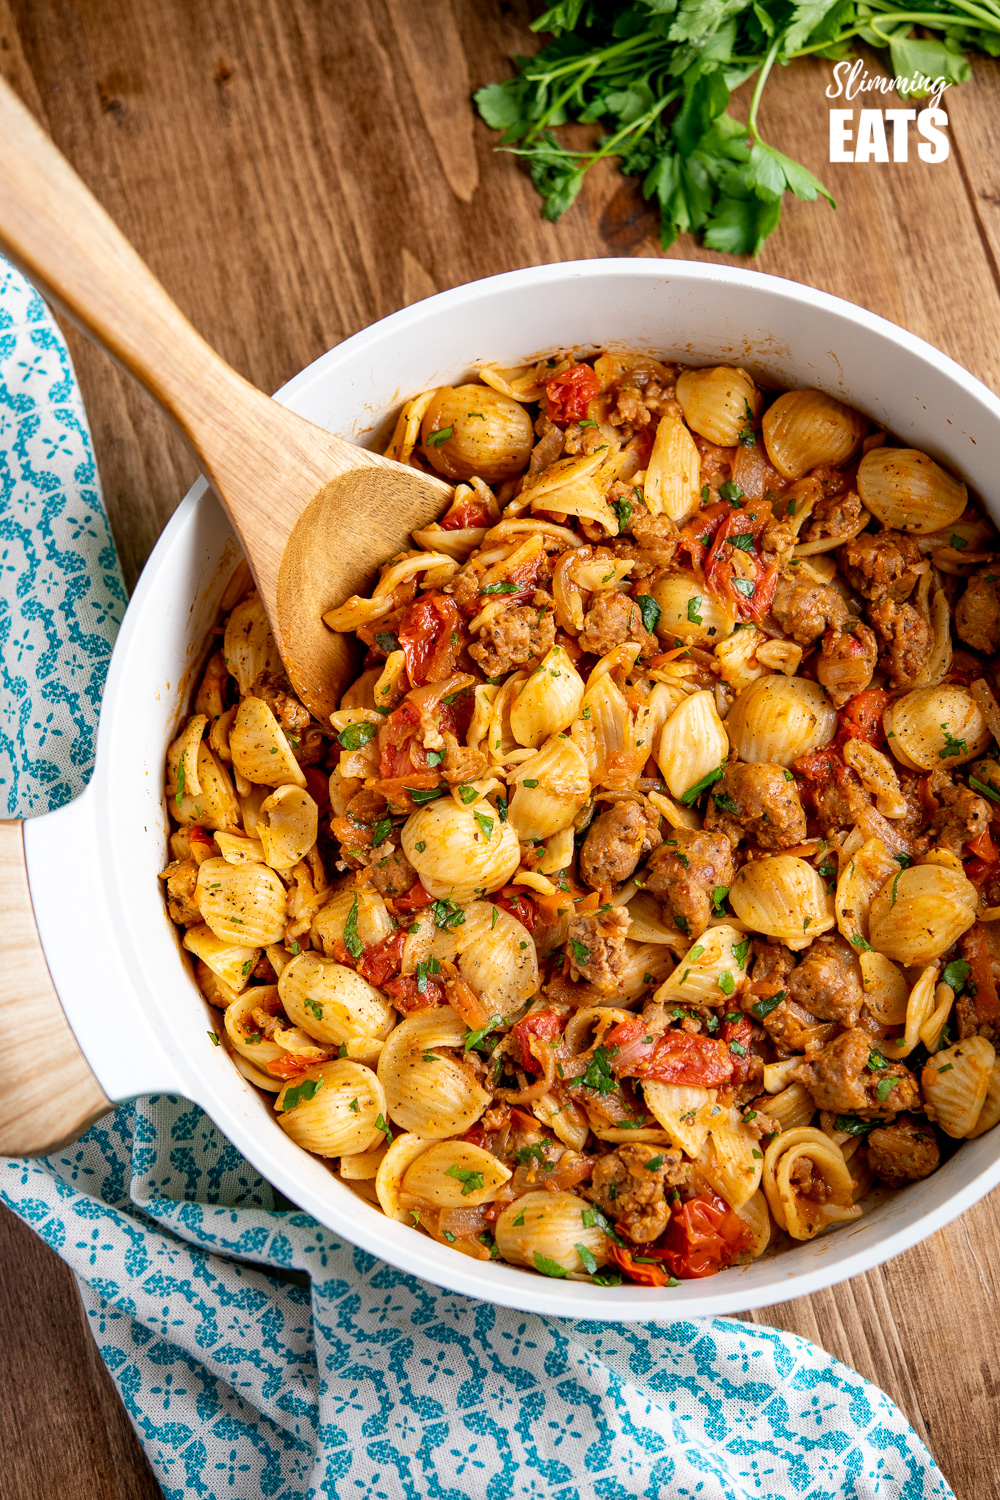 Sausage, Balsamic Tomatoes and Onion with Orecchiette in pan ceramic pan with wooden spoon